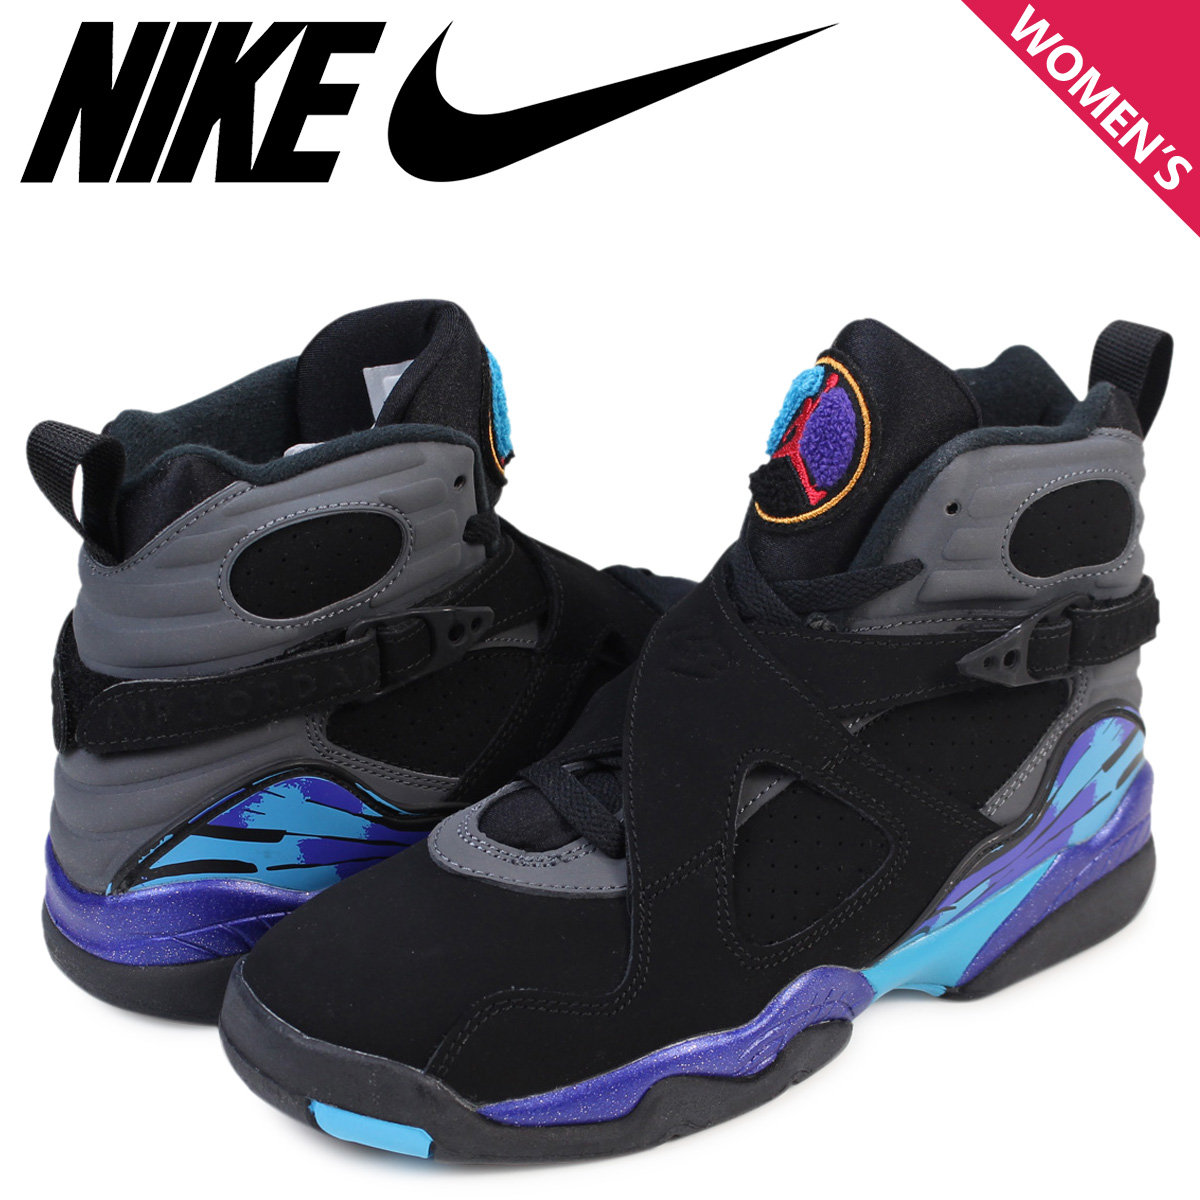 meet 0d626 1e299 NIKE Nike Air Jordan 8 nostalgic lady's sneakers AIR JORDAN 8 RETRO AQUA GS  305,368-025 shoes black black